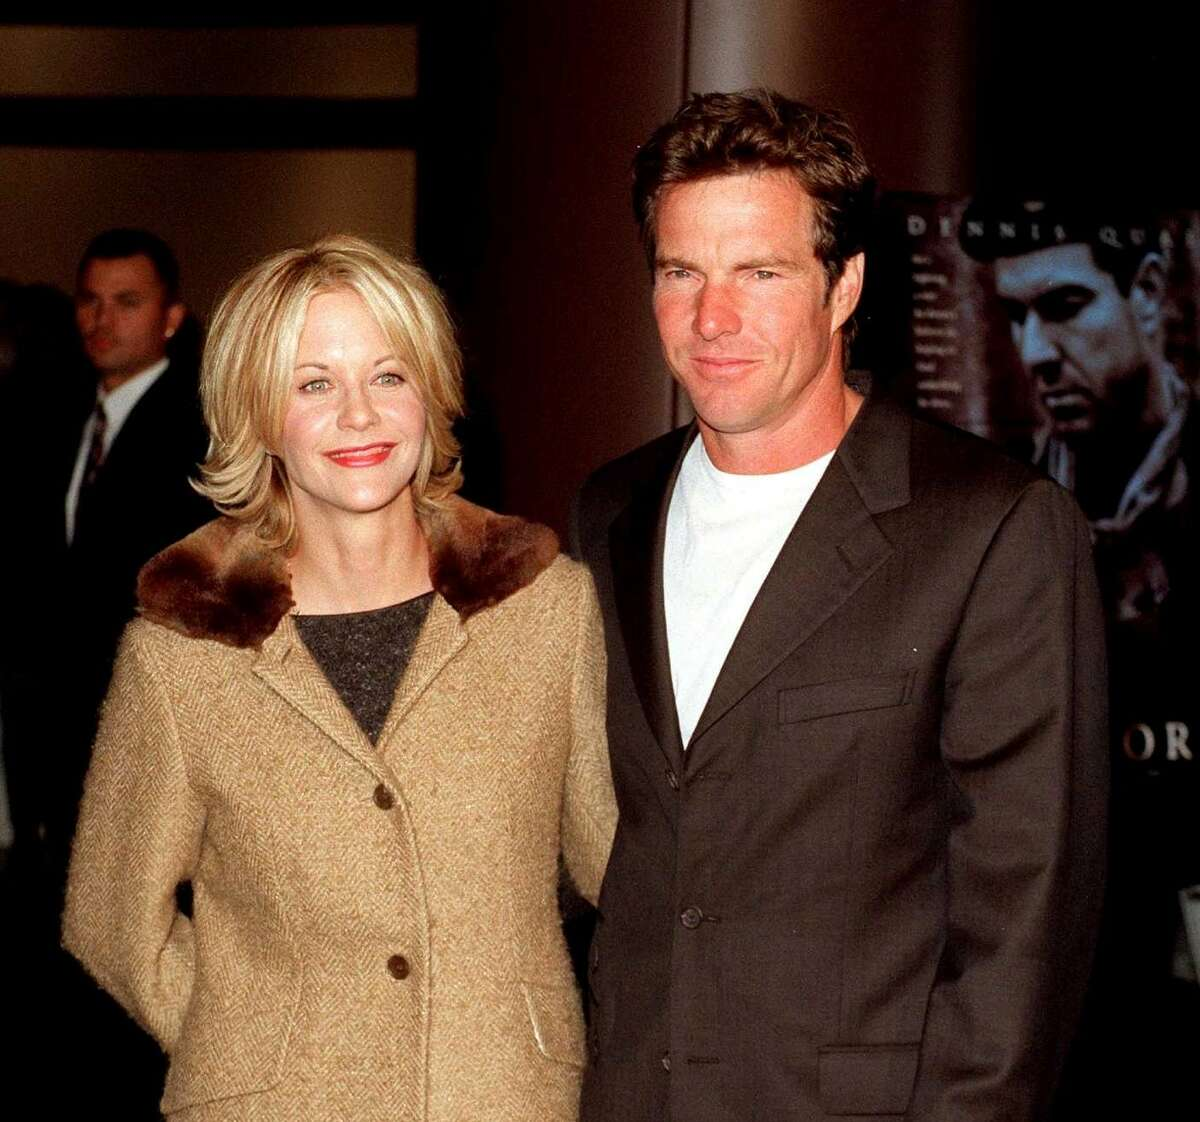 Meg Ryan and Dennis Quaid, who met on the set of the 1988 neo-noir